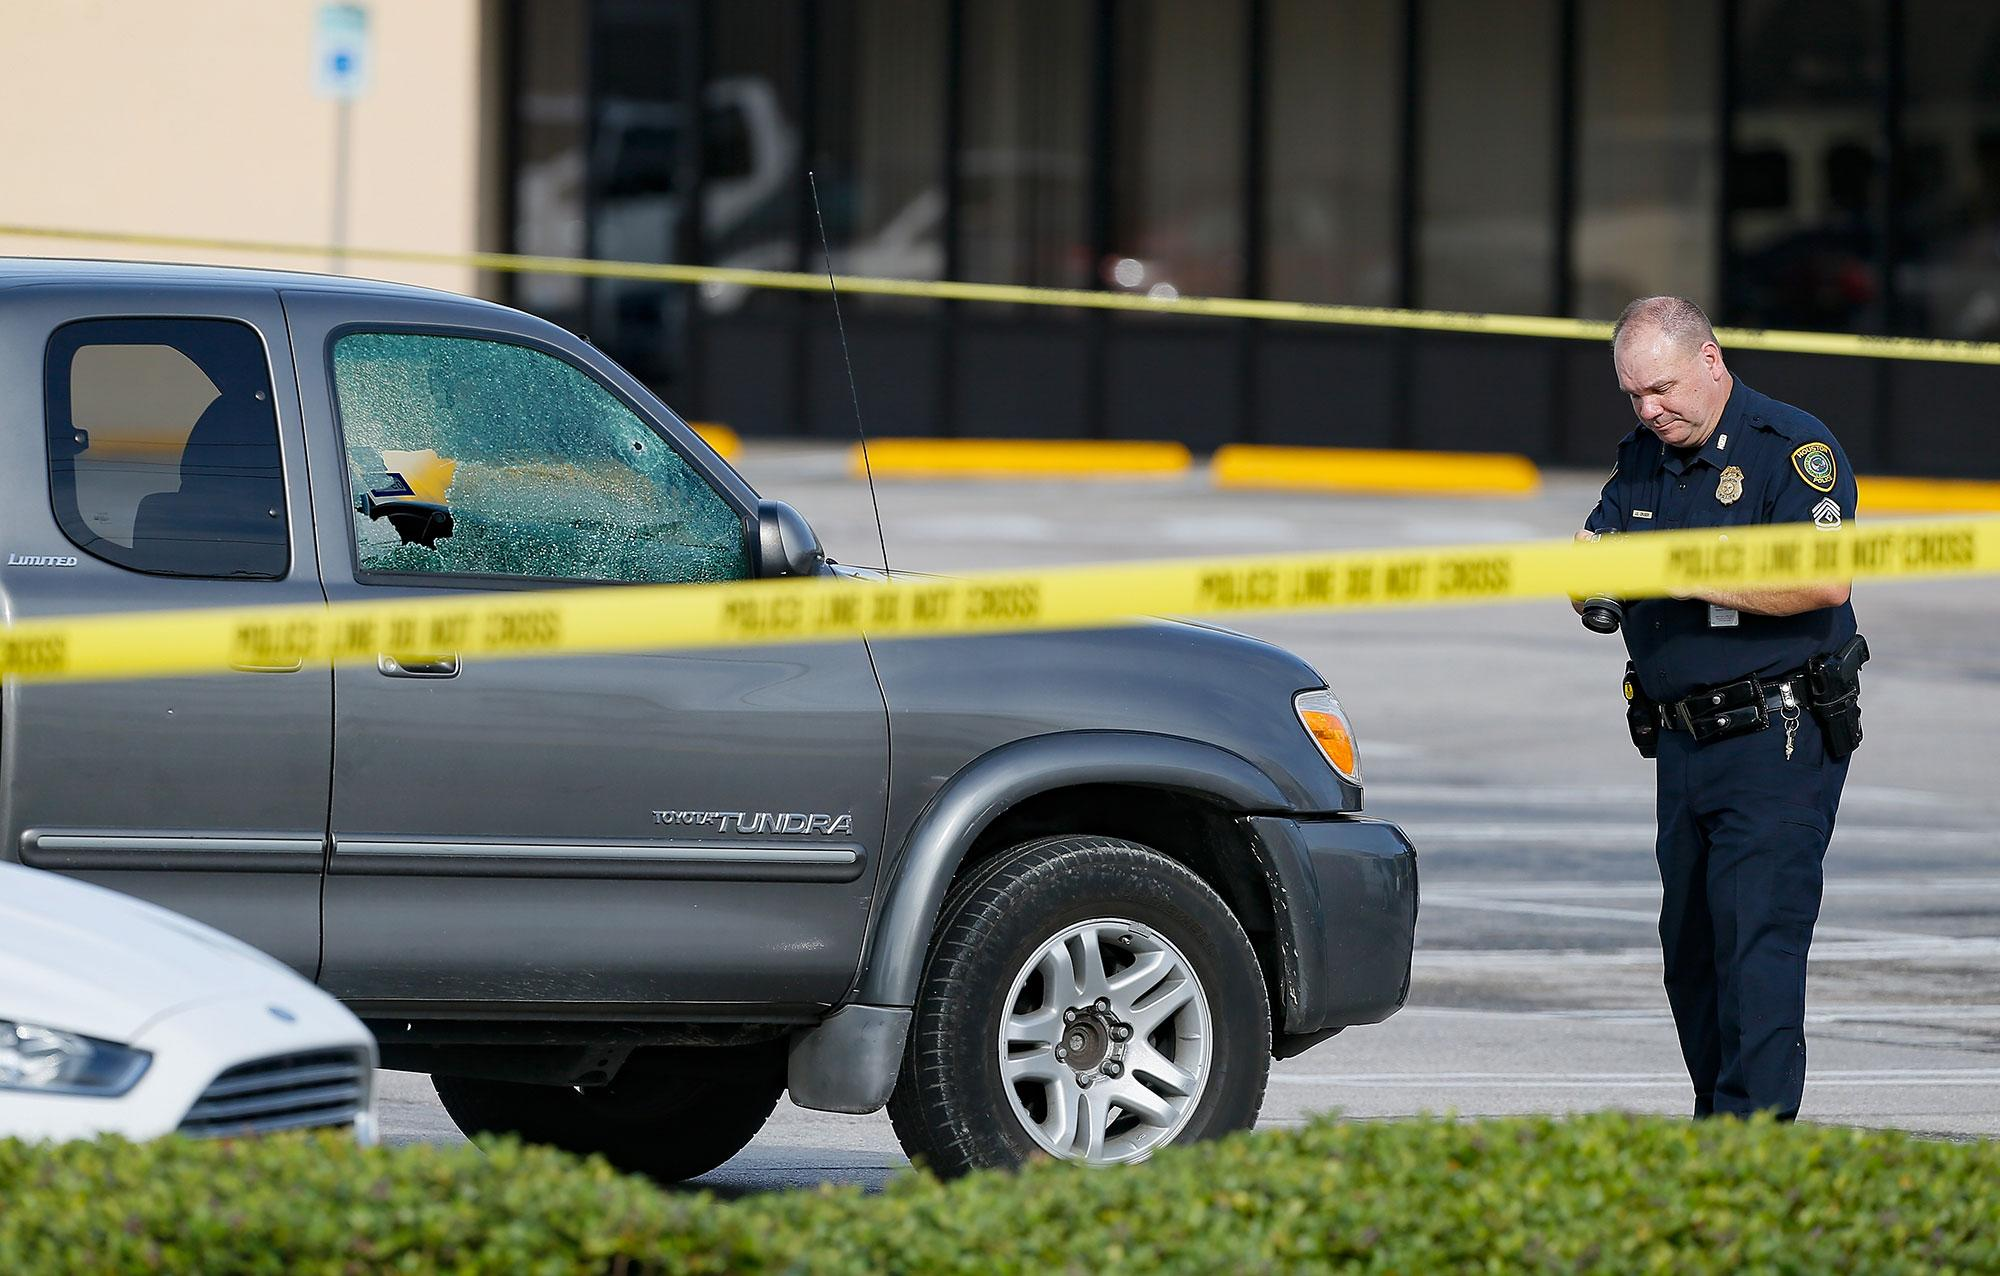 <p>A Houston Police Department investigator photograph a vehicle that received gunshot damage at a scene where nine were wounded in a strip mall shooting on September 26, 2016 in Houston, Texas. (Bob Levey/Getty Images) </p>